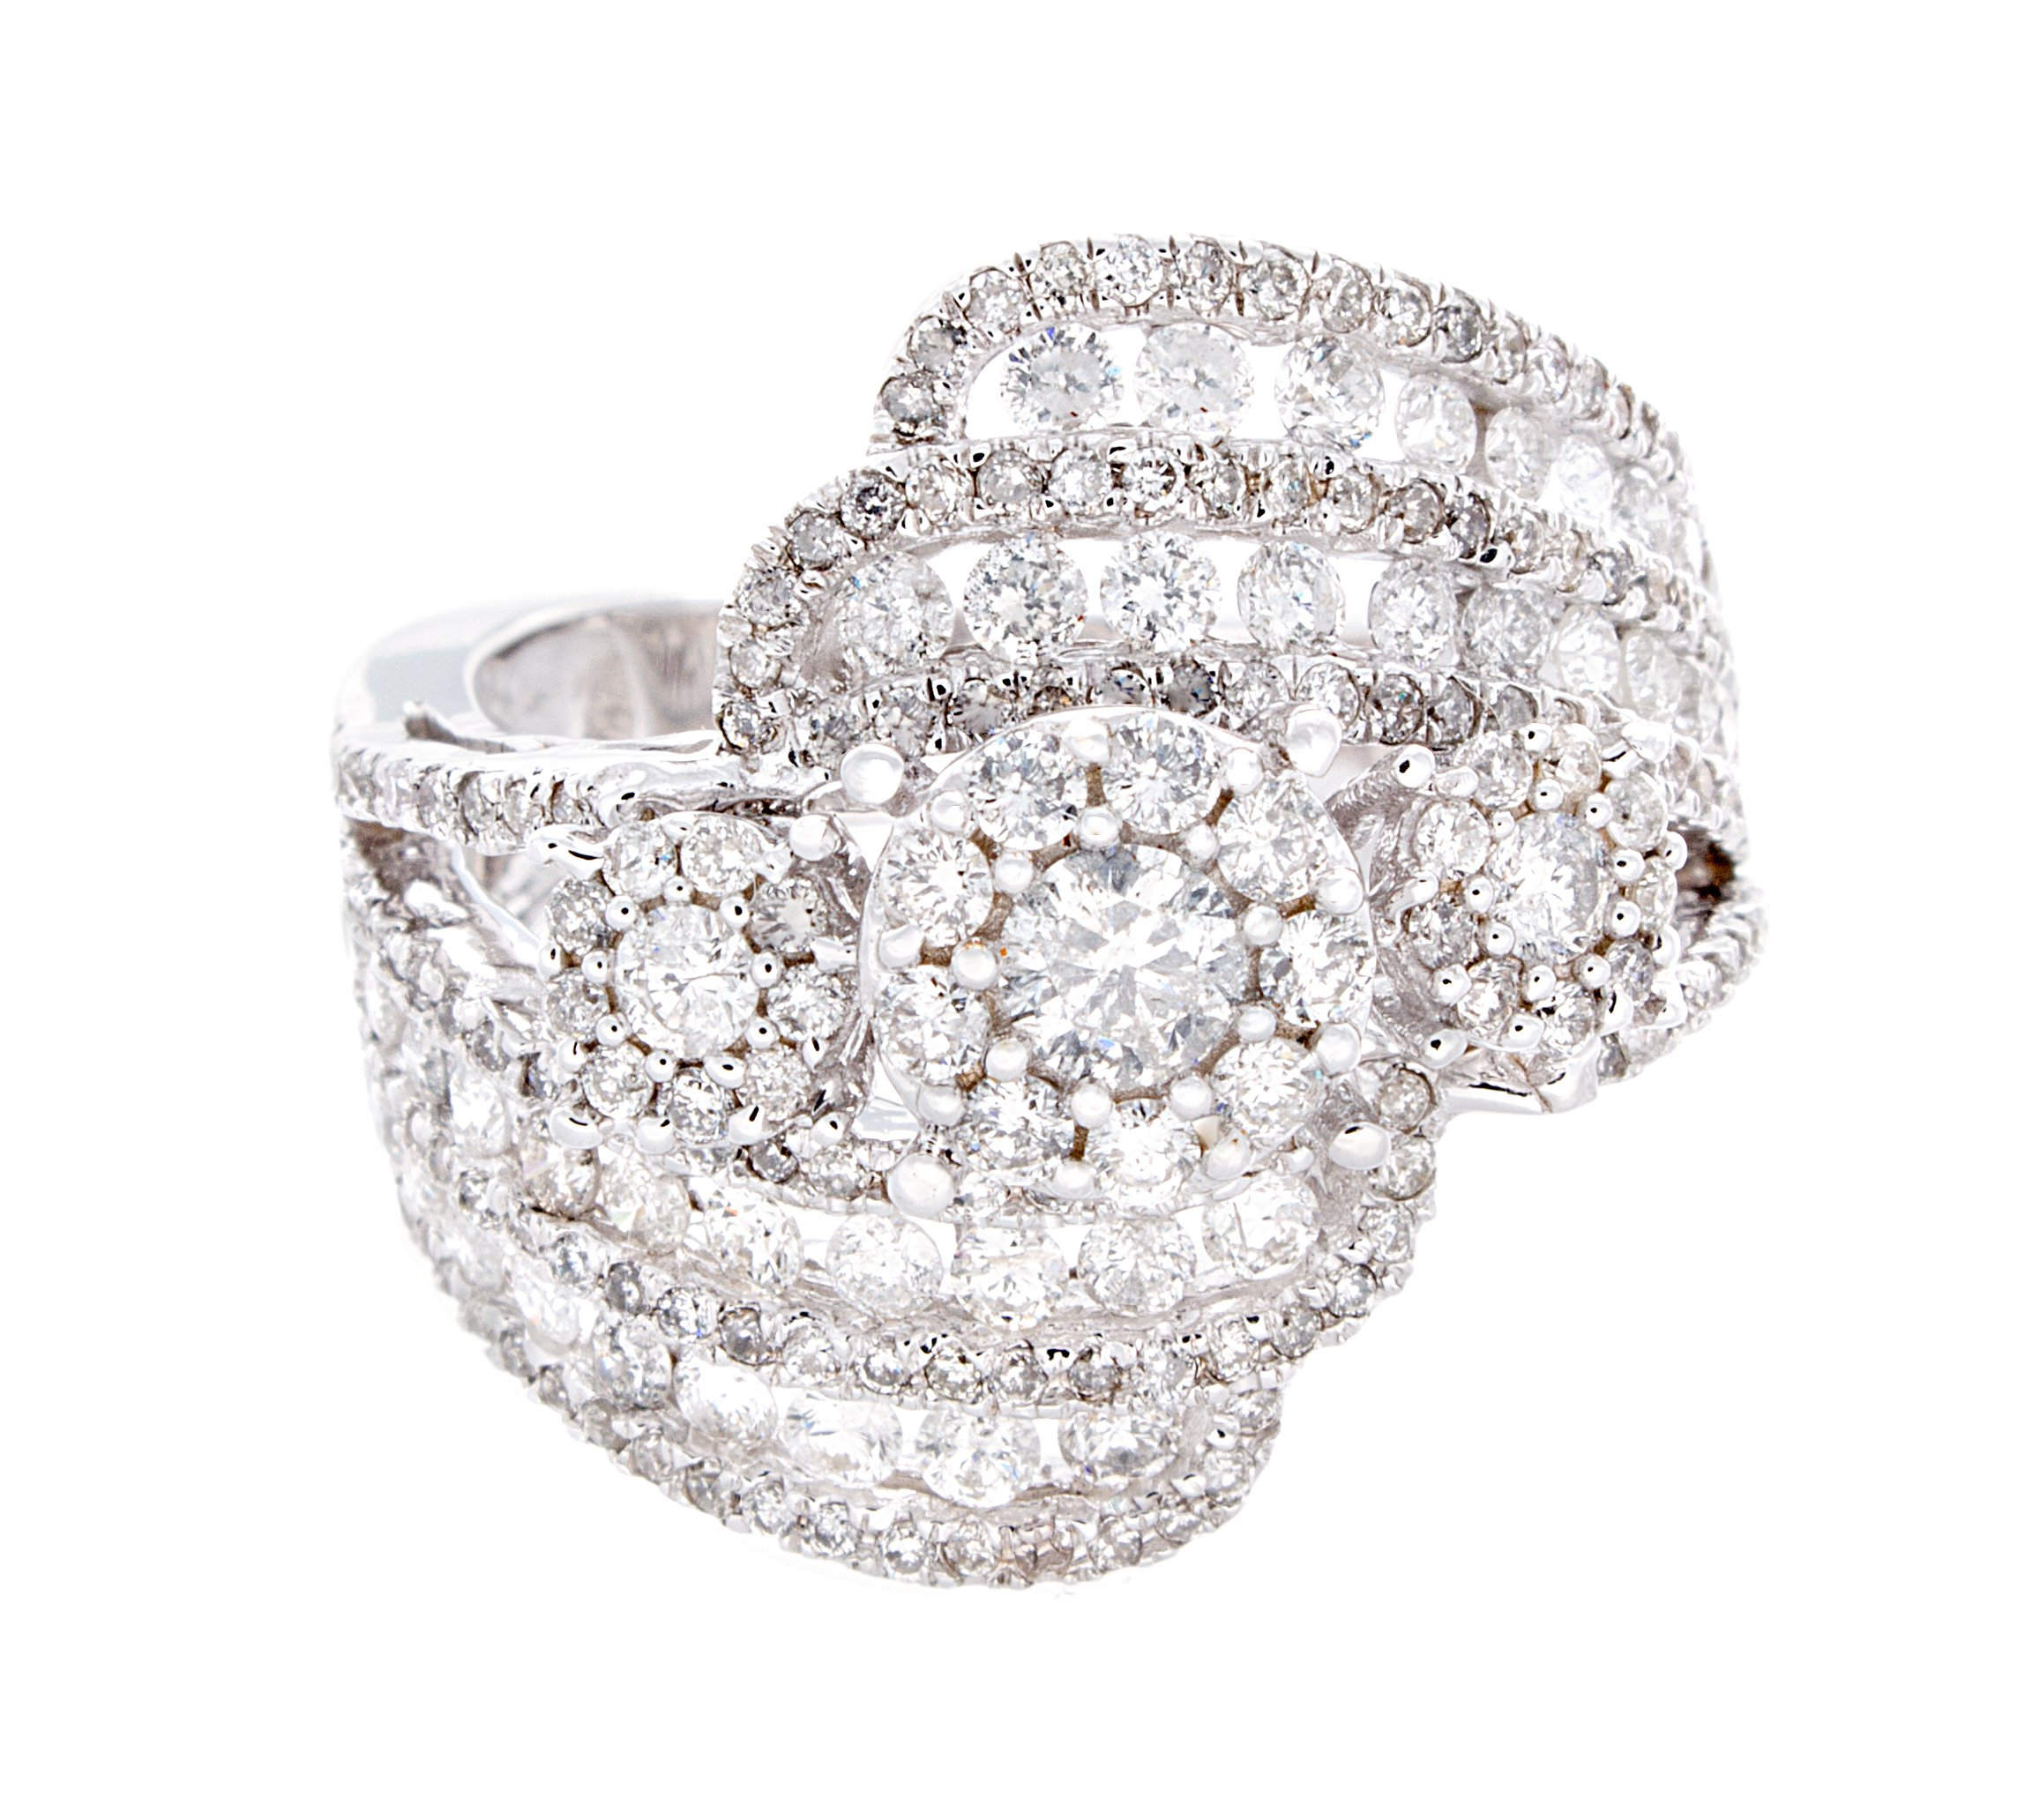 1.62ctw Excellent Cut Round Diamond (H-1 color, i1 - i2 clarity) in 14K Gold Fashion Ring